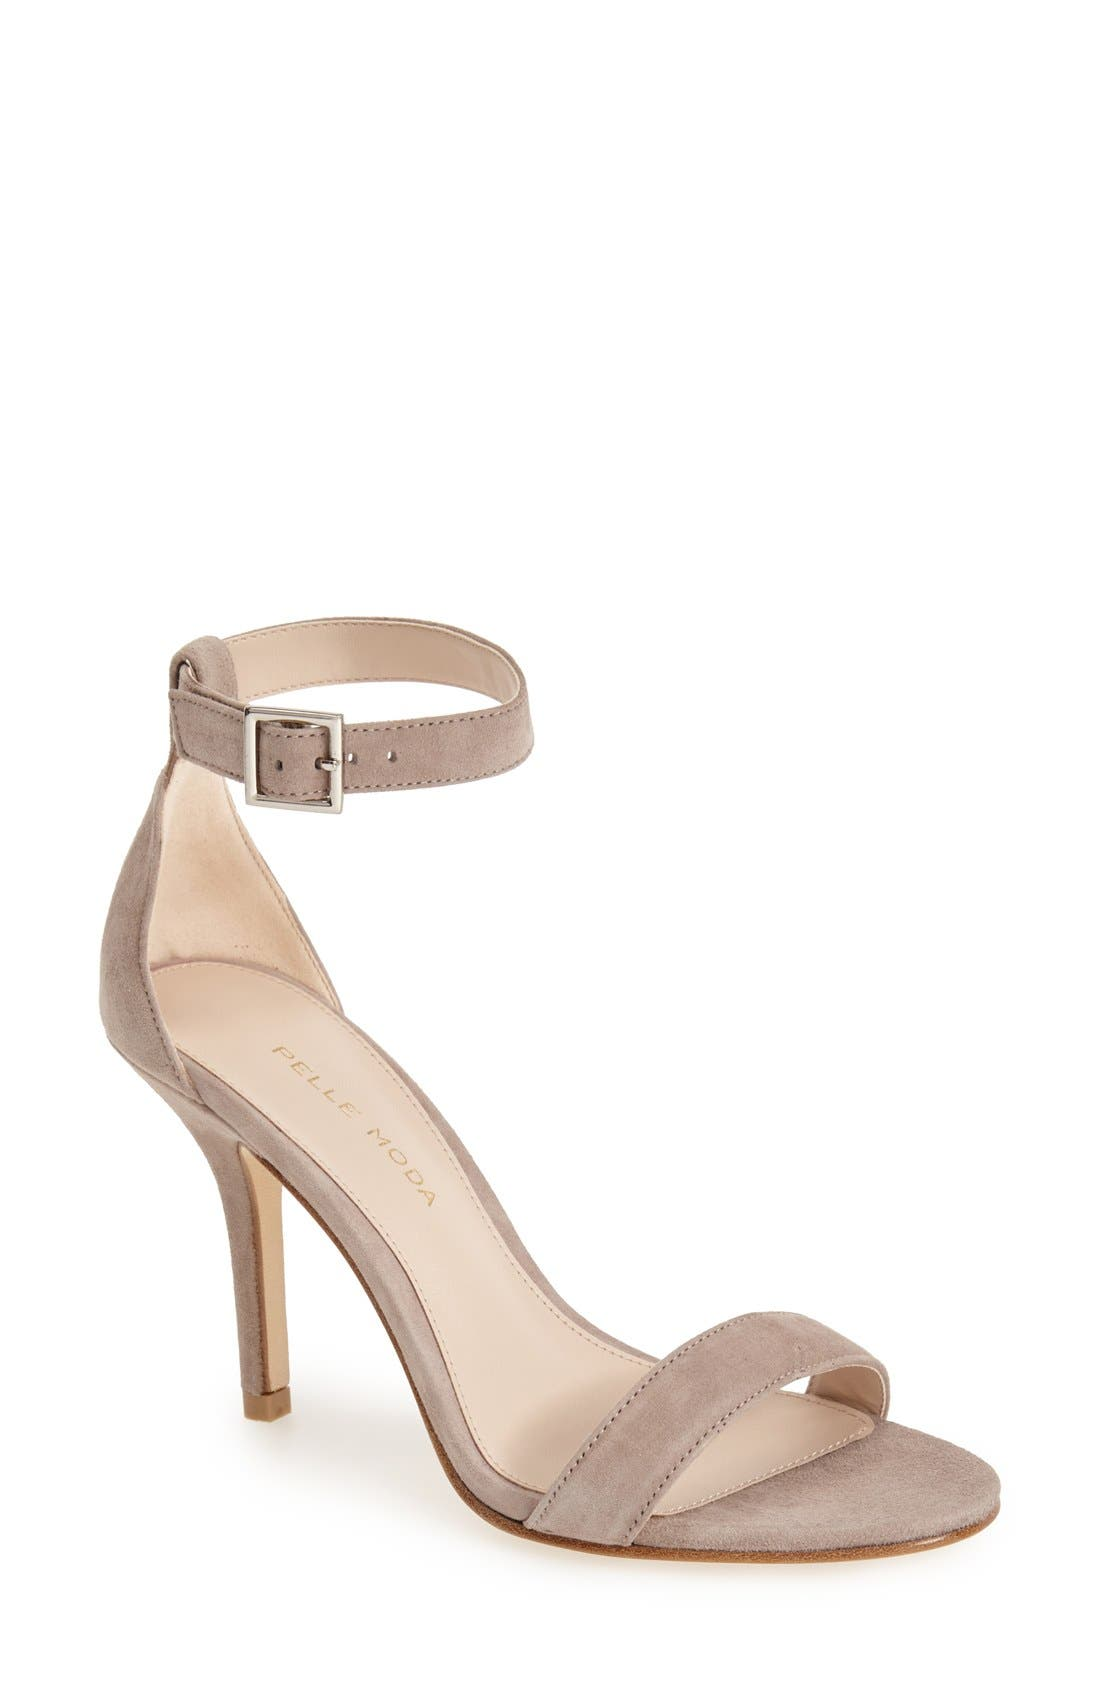 Alternate Image 1 Selected - Pelle Moda 'Kacey' Ankle Strap Sandal